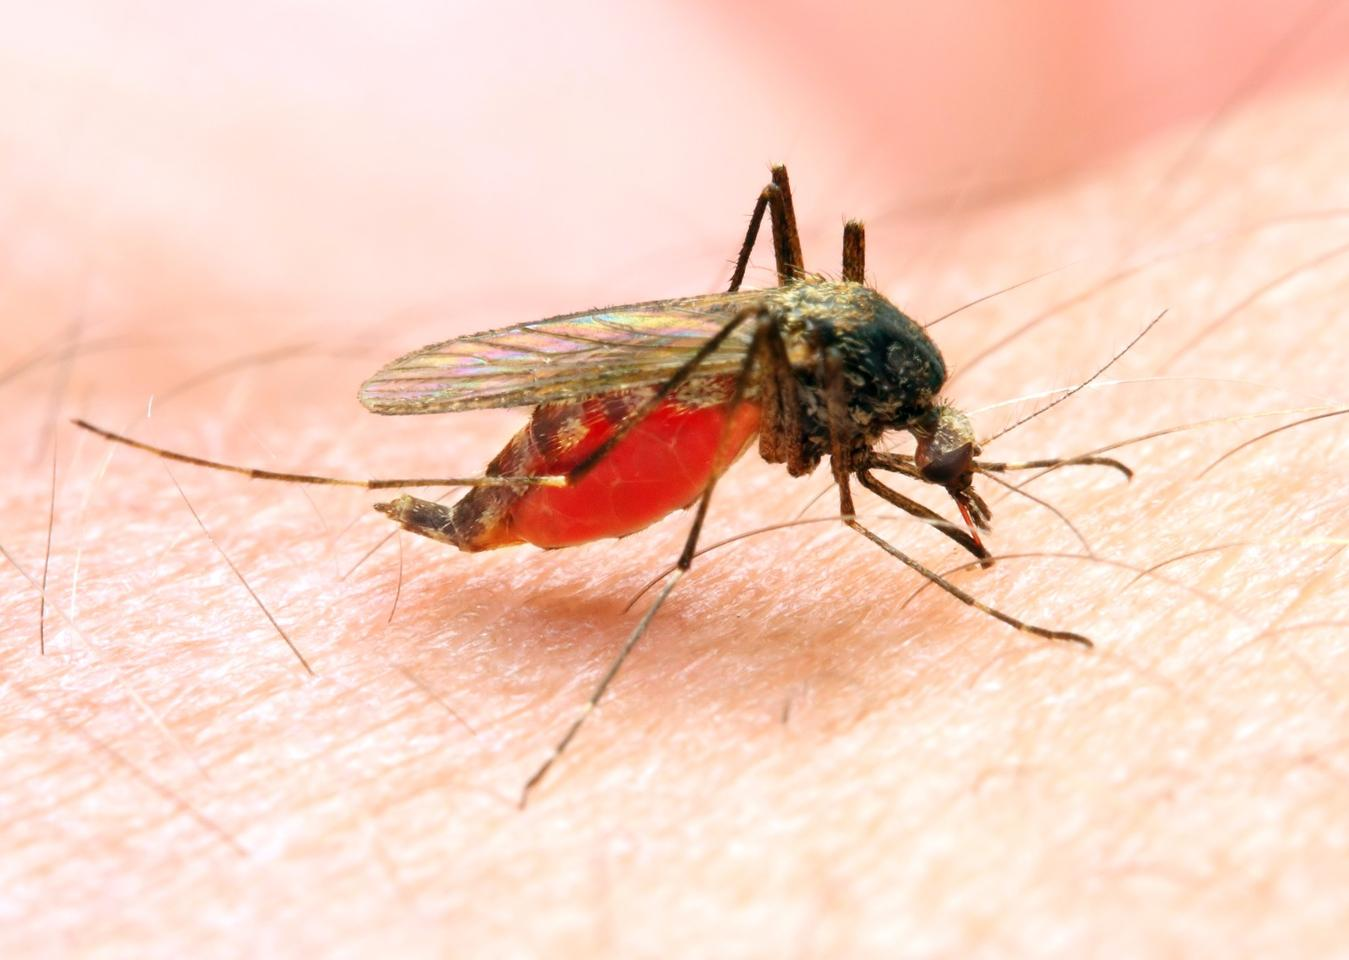 The hunt for a malaria vaccine has turned up a promising approach to tackling cancer